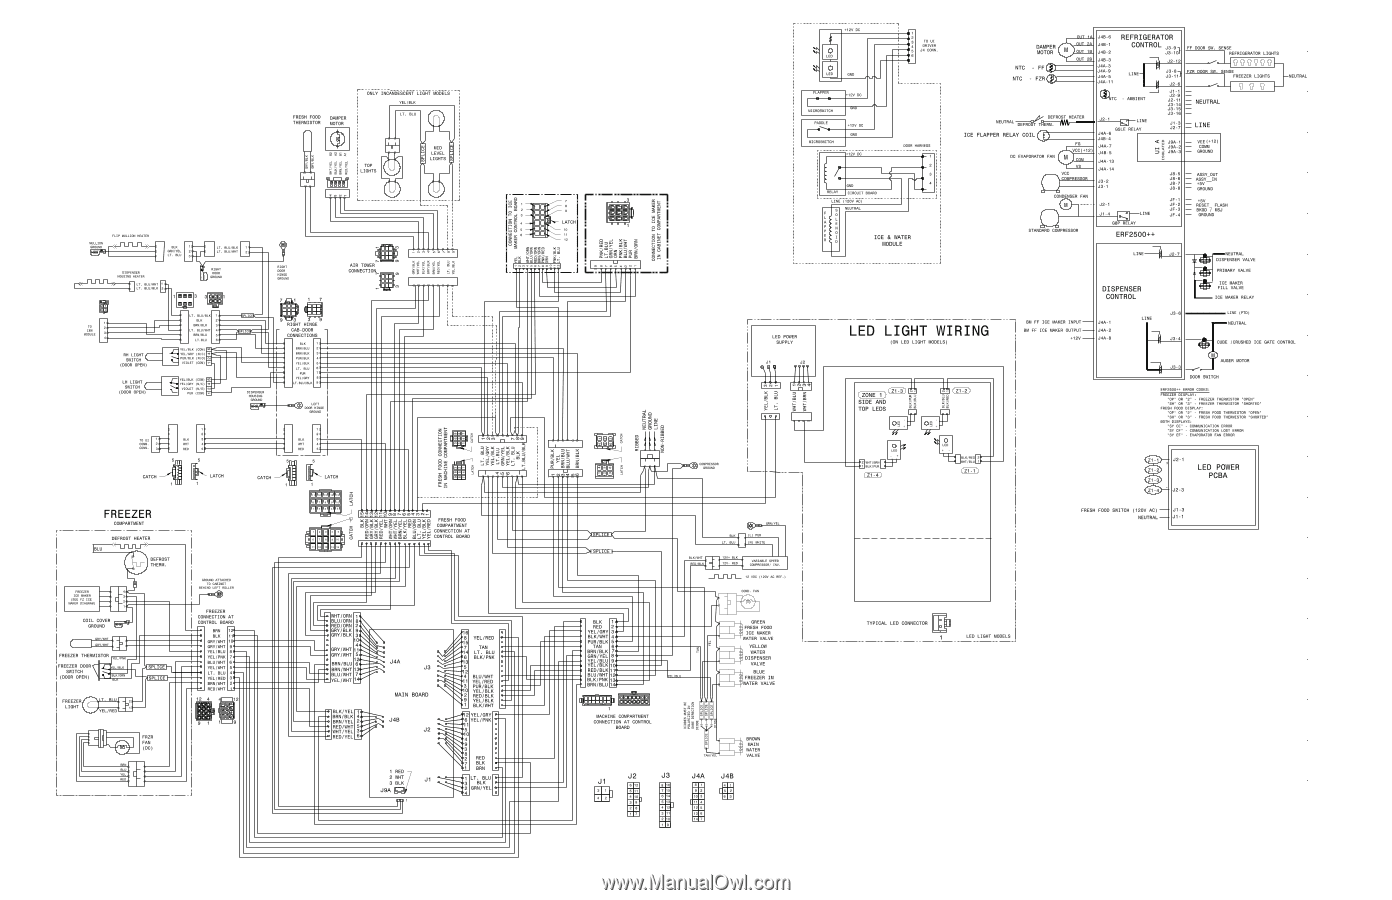 Commercial Wiring Diagrams For Residential Auto Electrical Displaying 19gt Images 1 Wire Alternator Diagram Well Pump Html